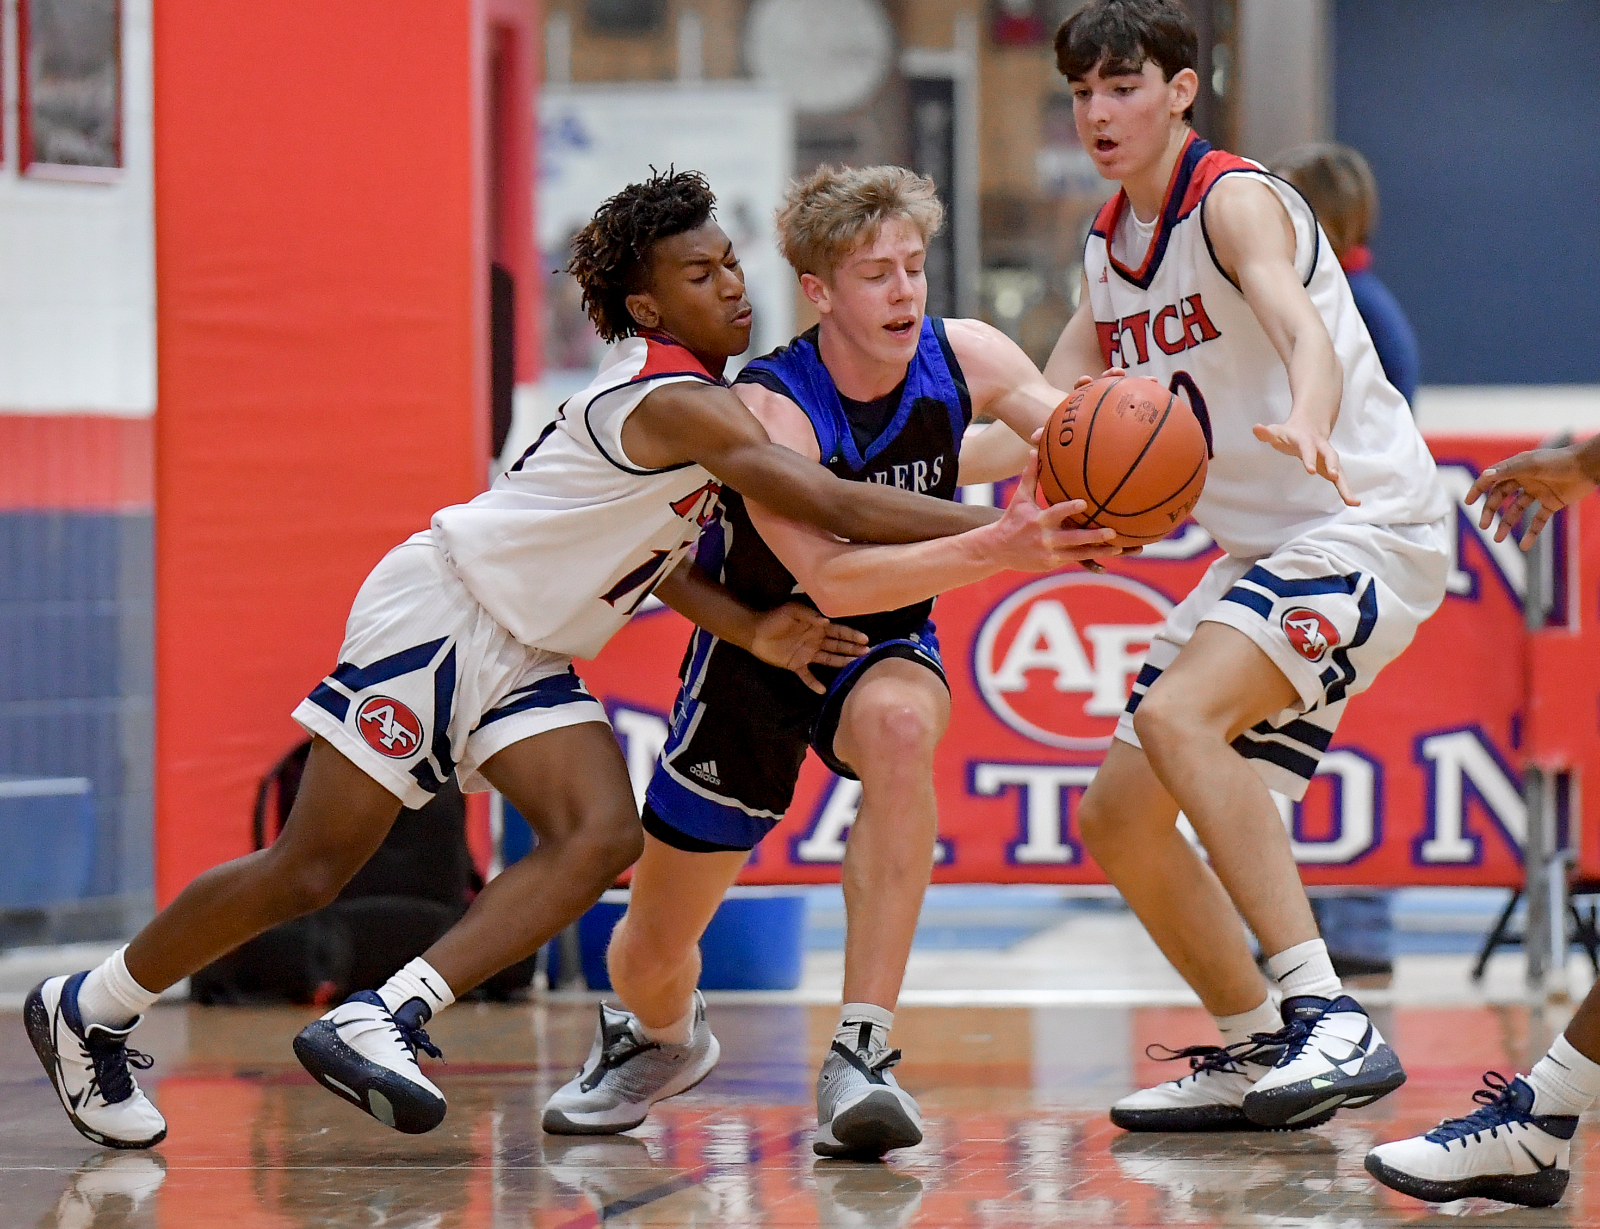 Images From Hudson Boys Basketball @ Austintown Fitch